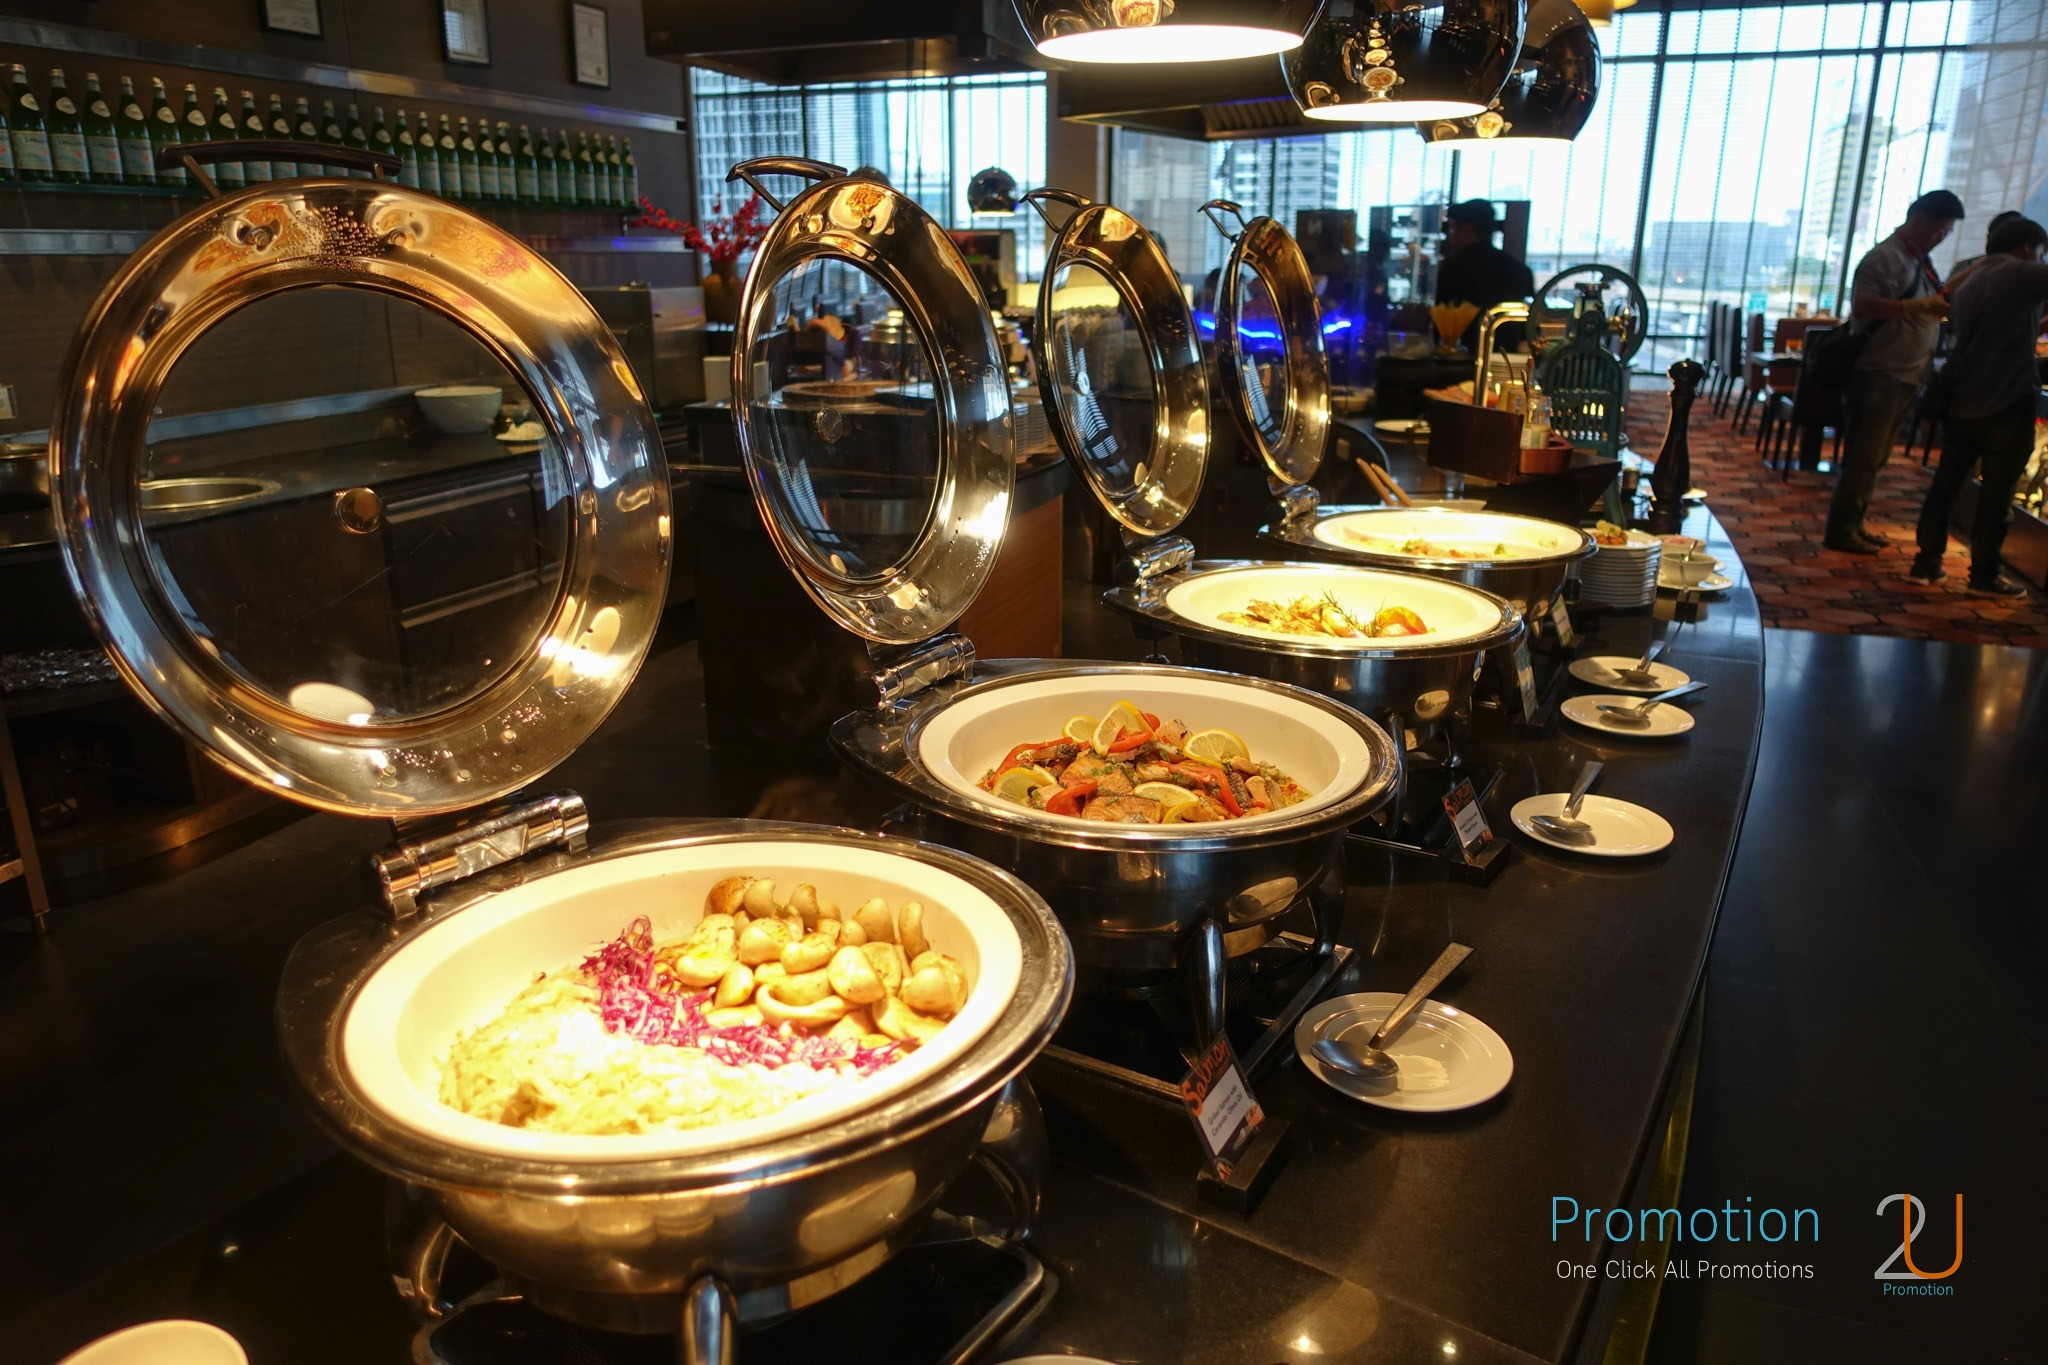 24Promotiion-Buffet-Come-2-pay-1-at-The--Squaer-Novotel-Pleonjit-Bangkok